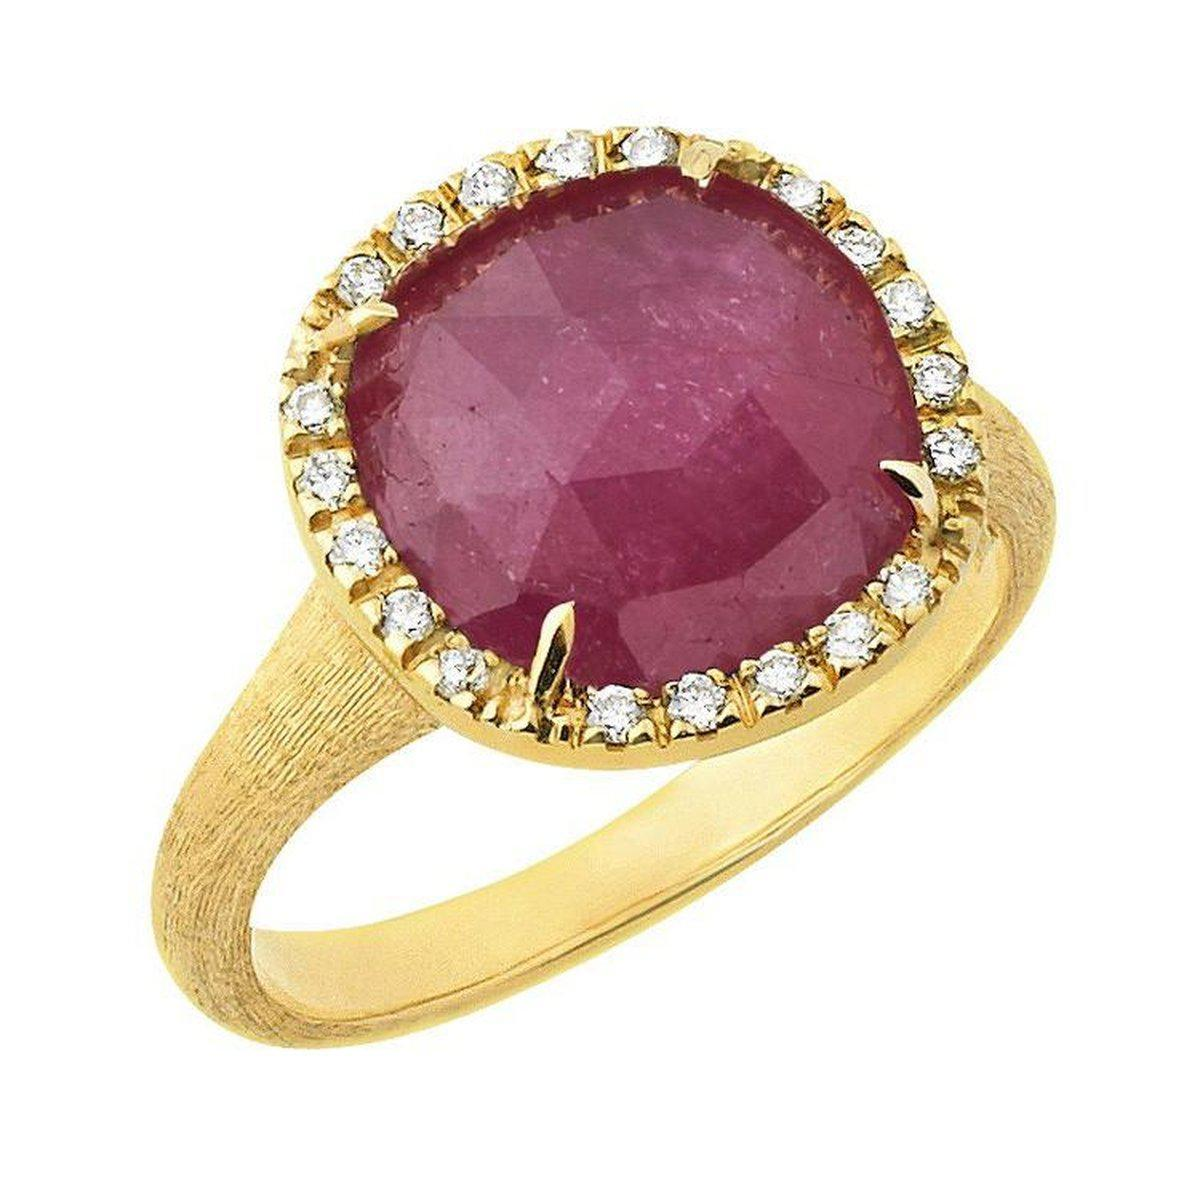 18K Jaipur Diamond Pink Sapphire Ring - AB449 B2 ZR01 Y-Marco Bicego-Renee Taylor Gallery